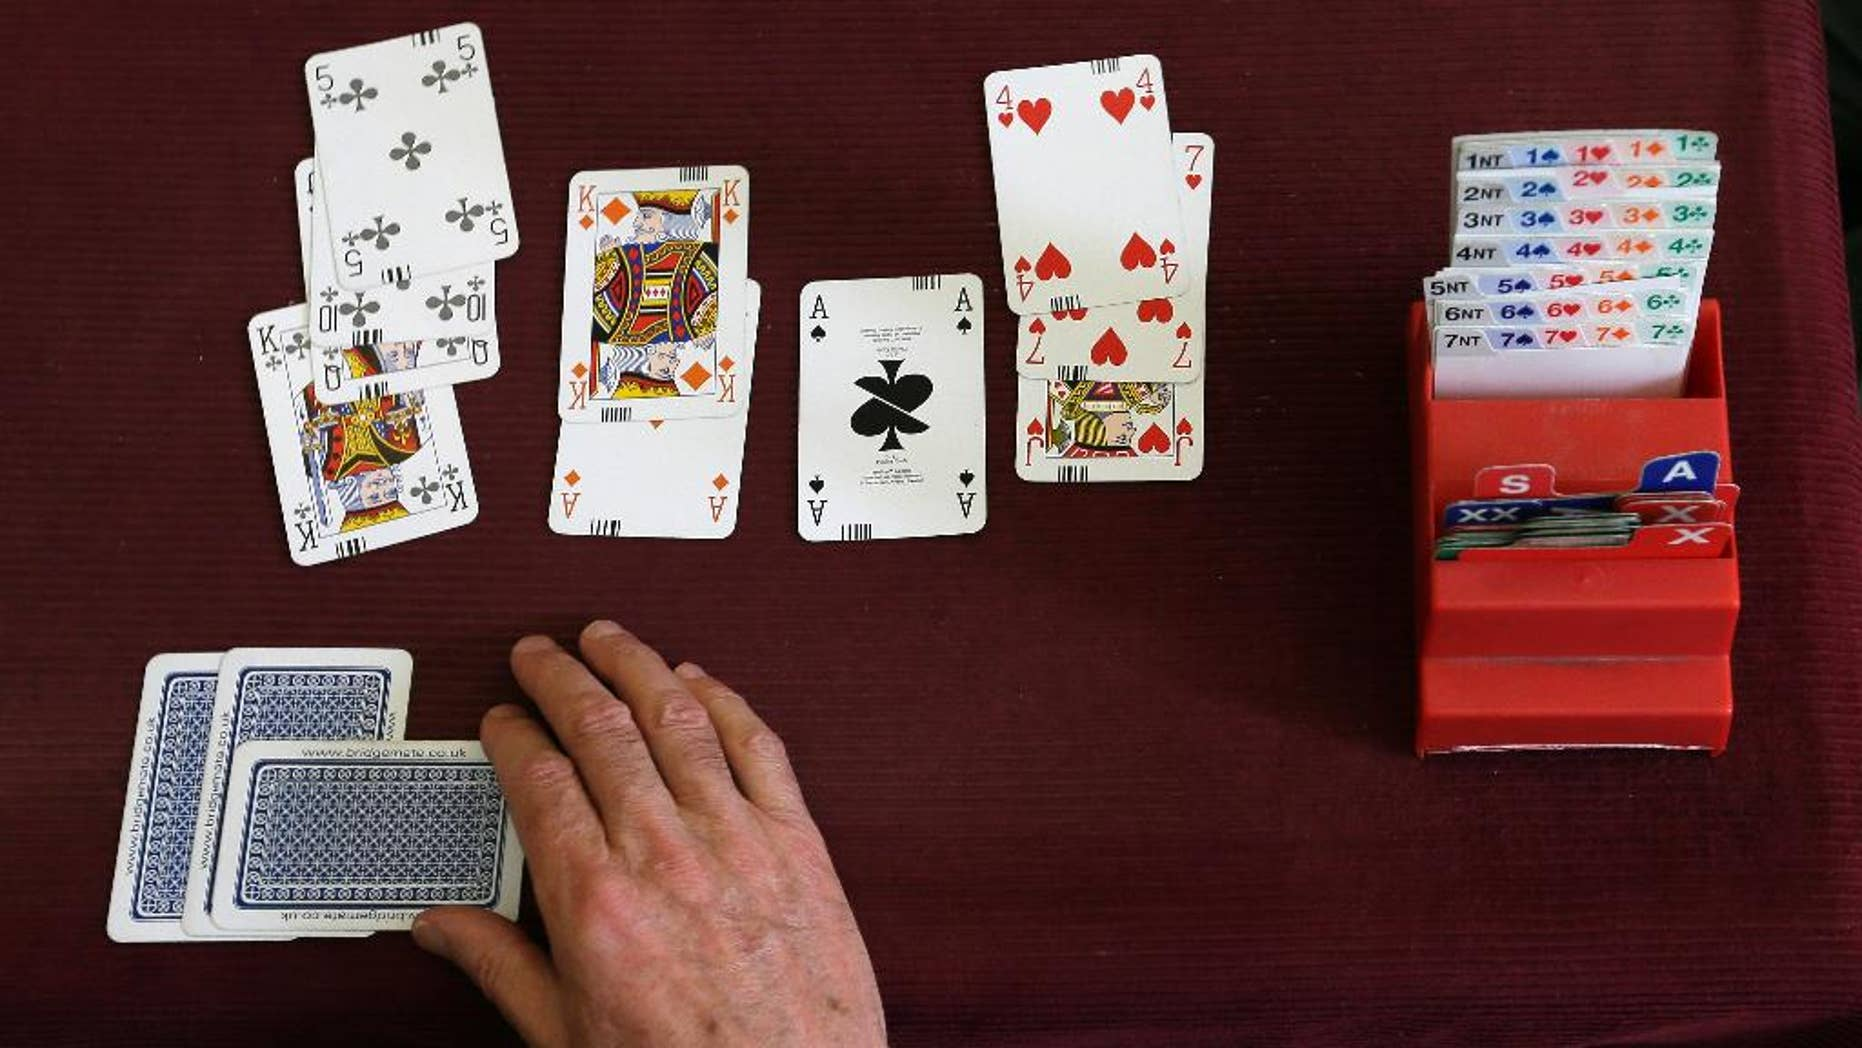 FILE - This is a Tuesday Sept. 22, 2015 file photo of  a competitor playing bridge at the Acol Bridge Club in West Hampstead, London. A High Court judge on Thursday Oct. 15, 2015  backed Sport England's assertion that bridge is not a sport because it does not involve physical activity. English Bridge Union officials had challenged the ruling in court. (AP Photo/Tim Ireland, File)